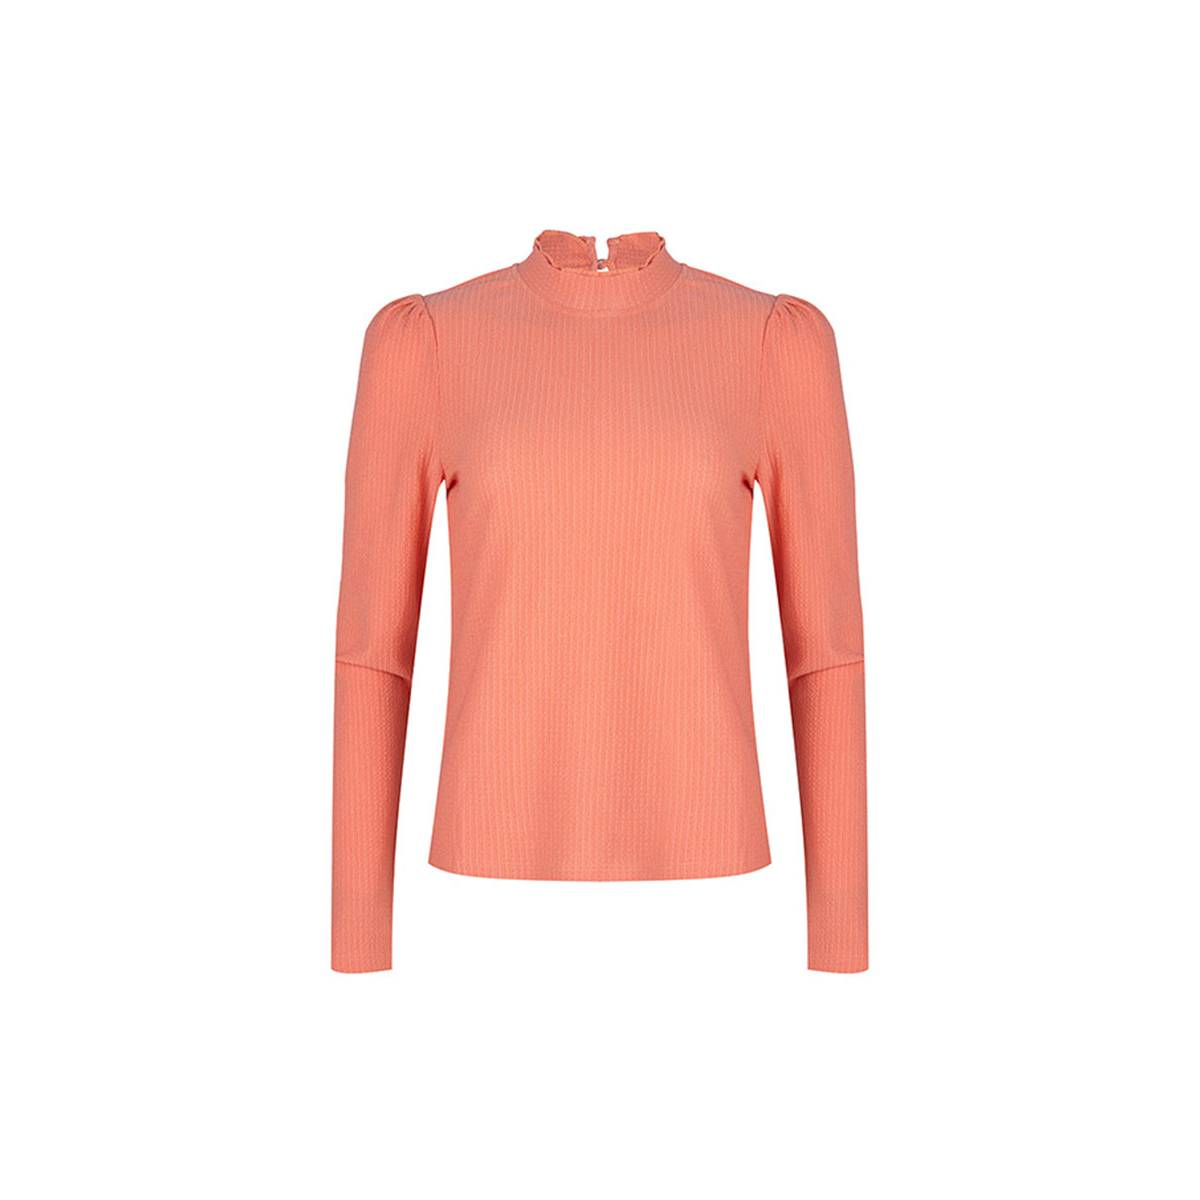 Lofty Manner TOP AMBERLY MM60.1 Oranje